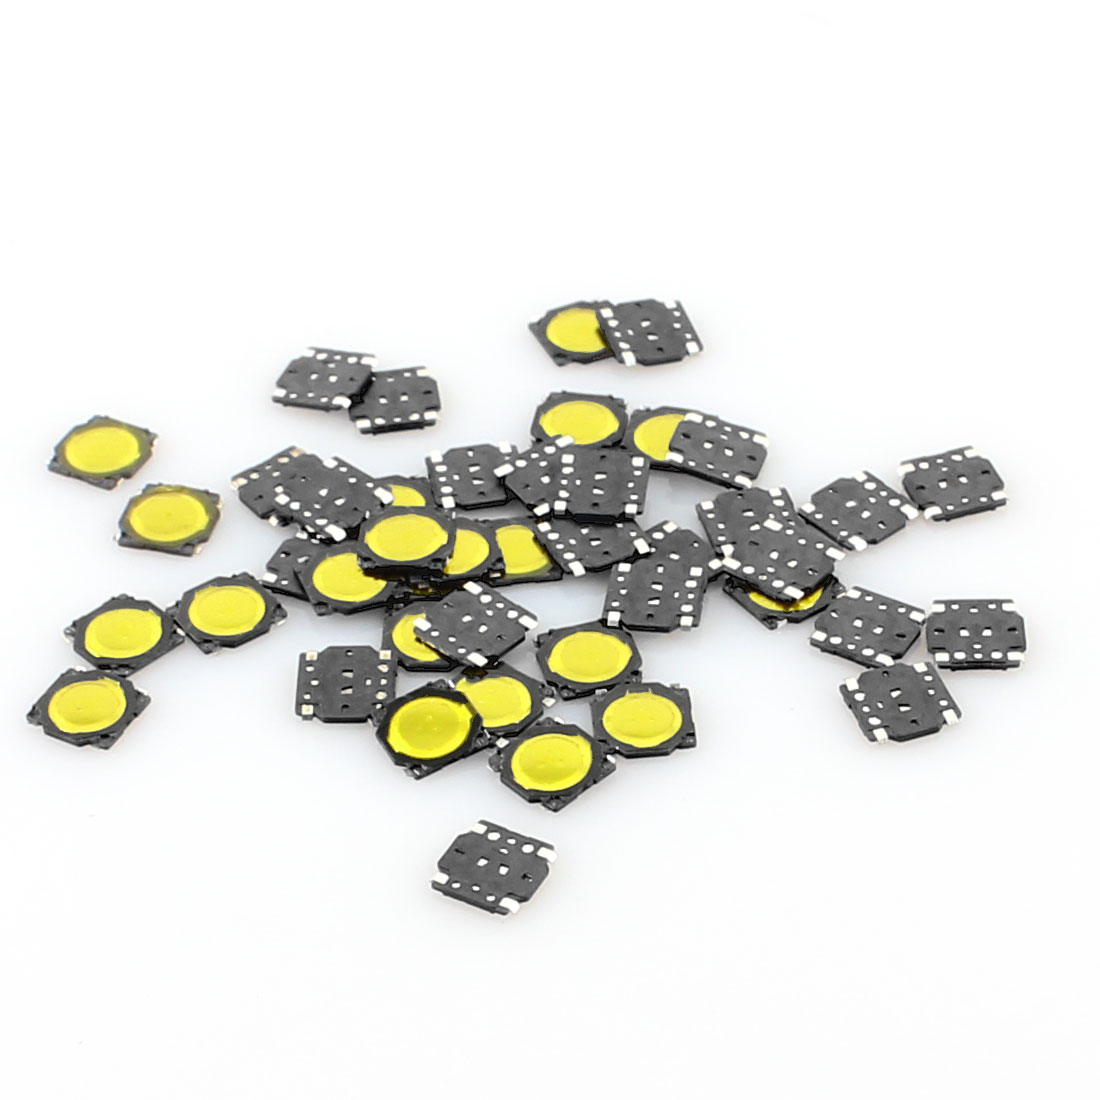 50 Pcs 3.7x3.7x0.35mm 4 Pins Momentary Push Button SMD SMT Tactile Tact Switch